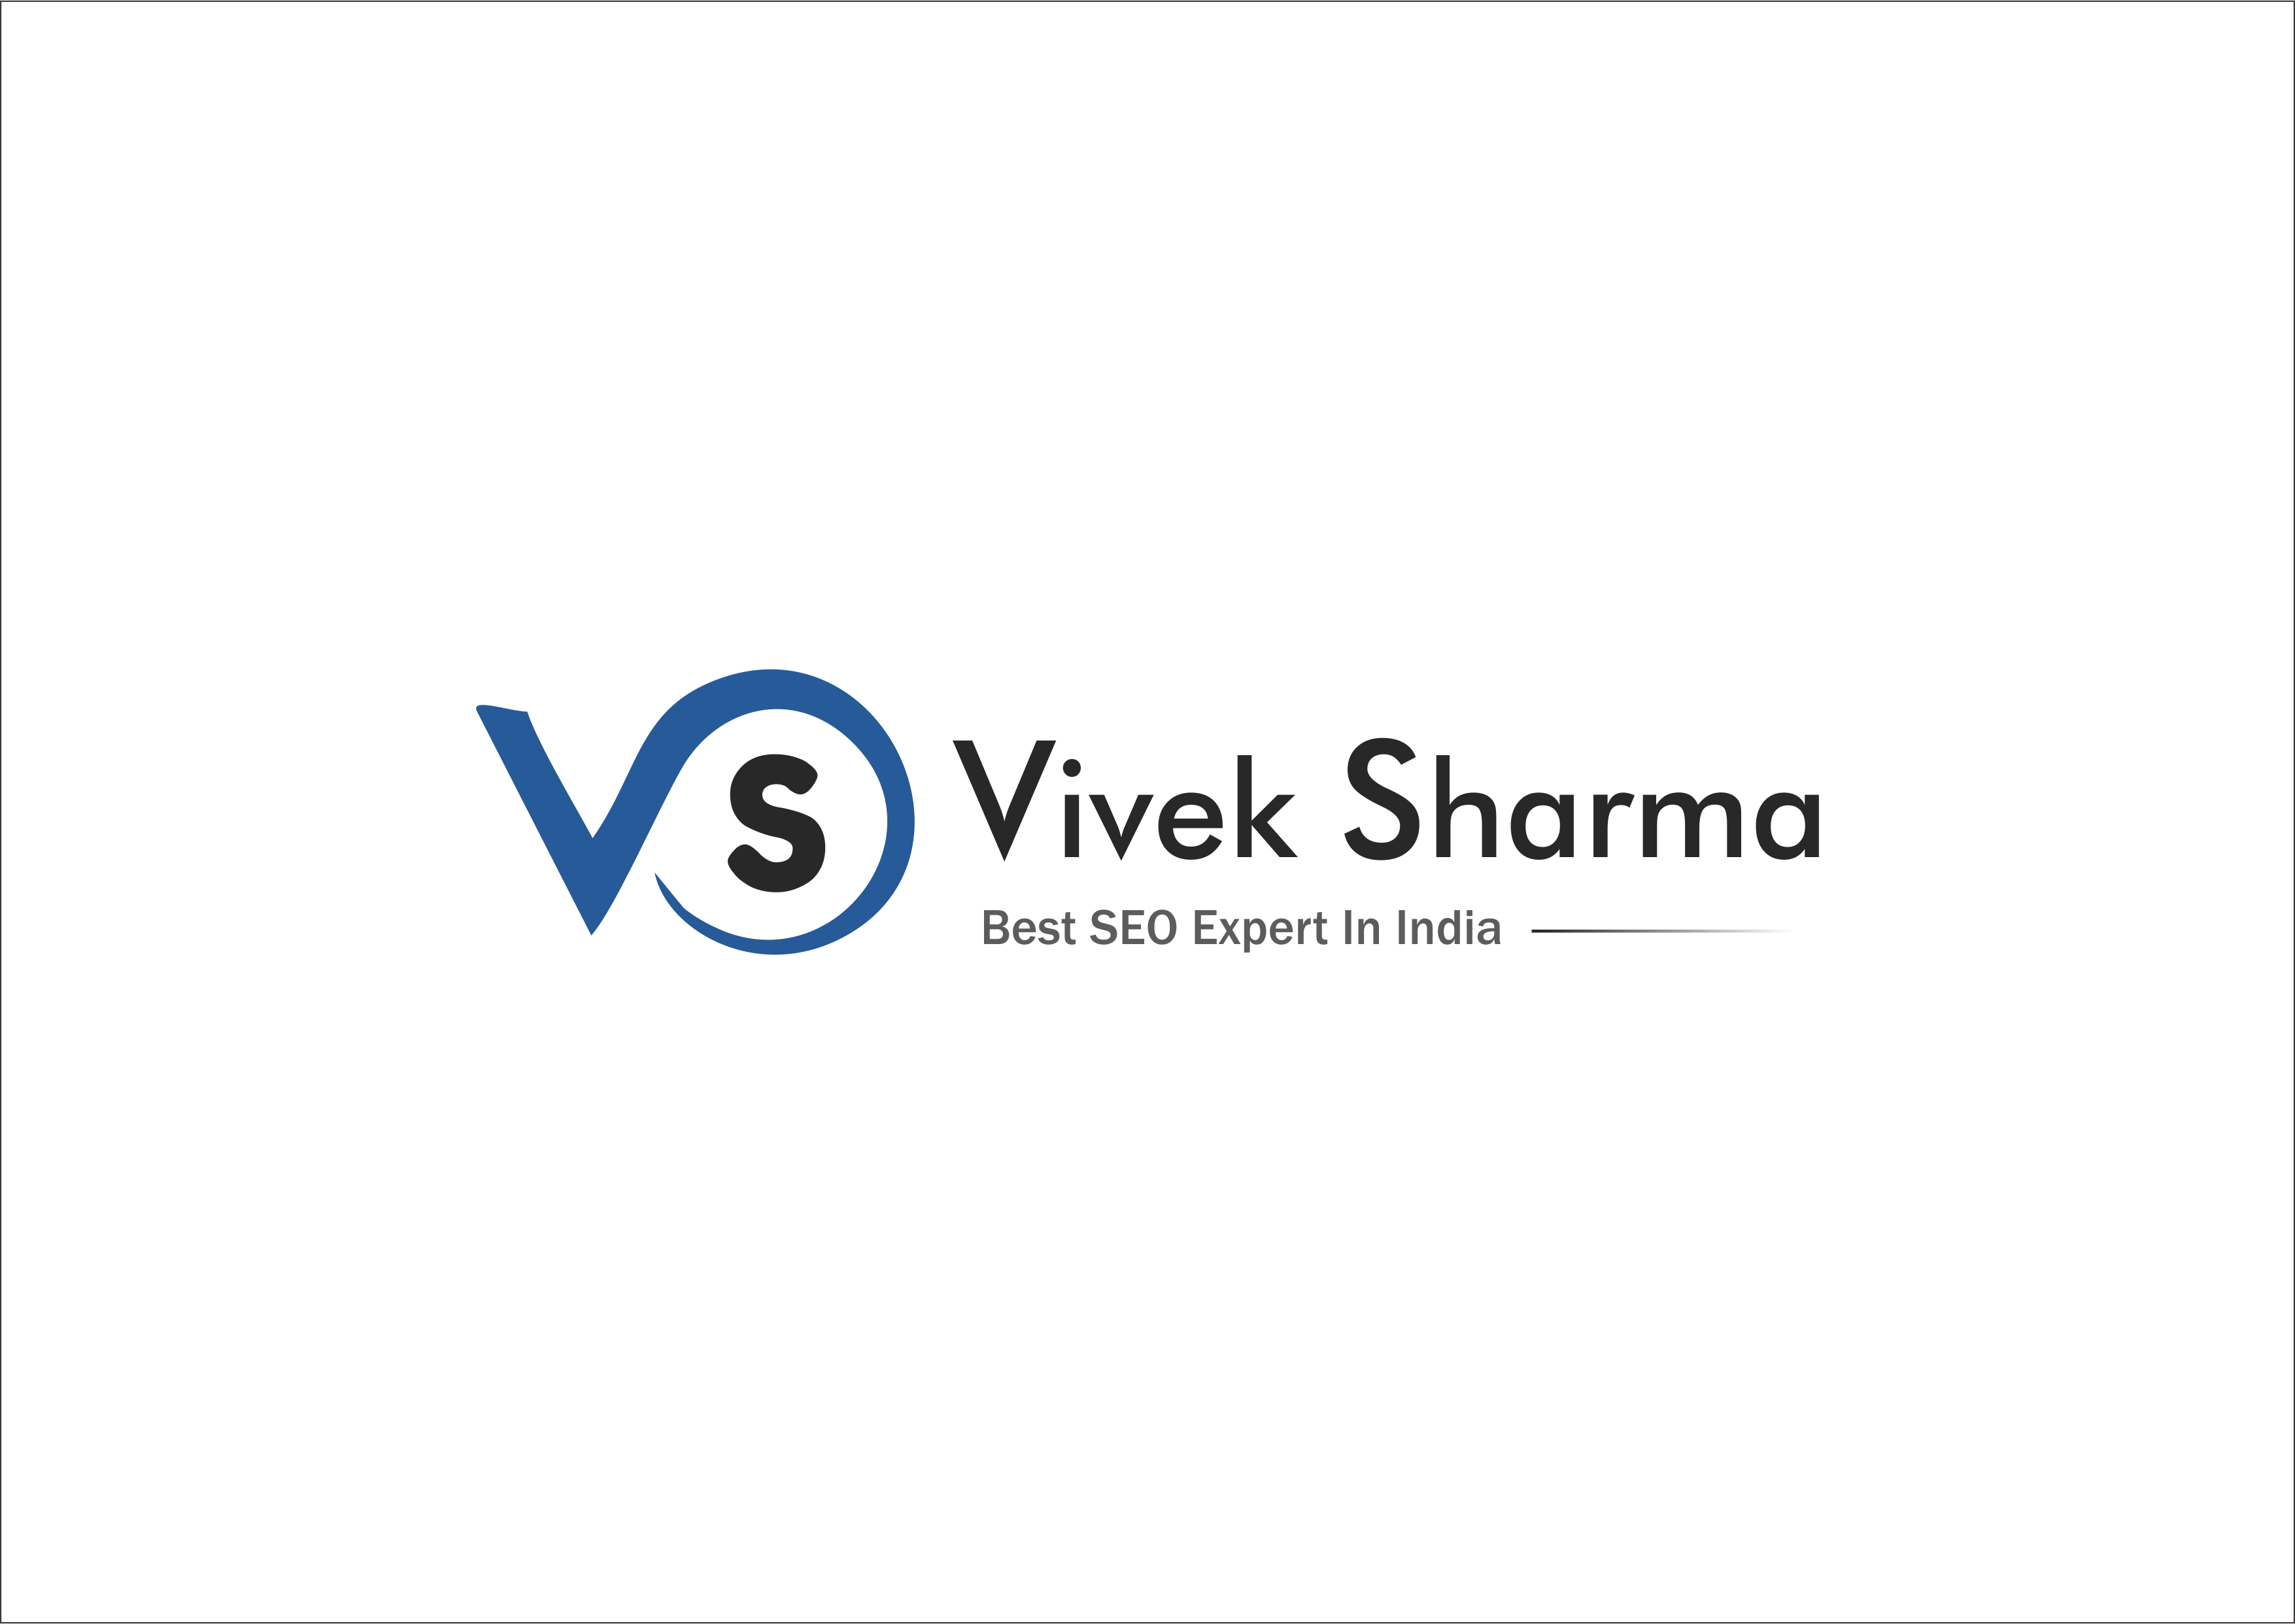 Best SEO Expert in India Logo